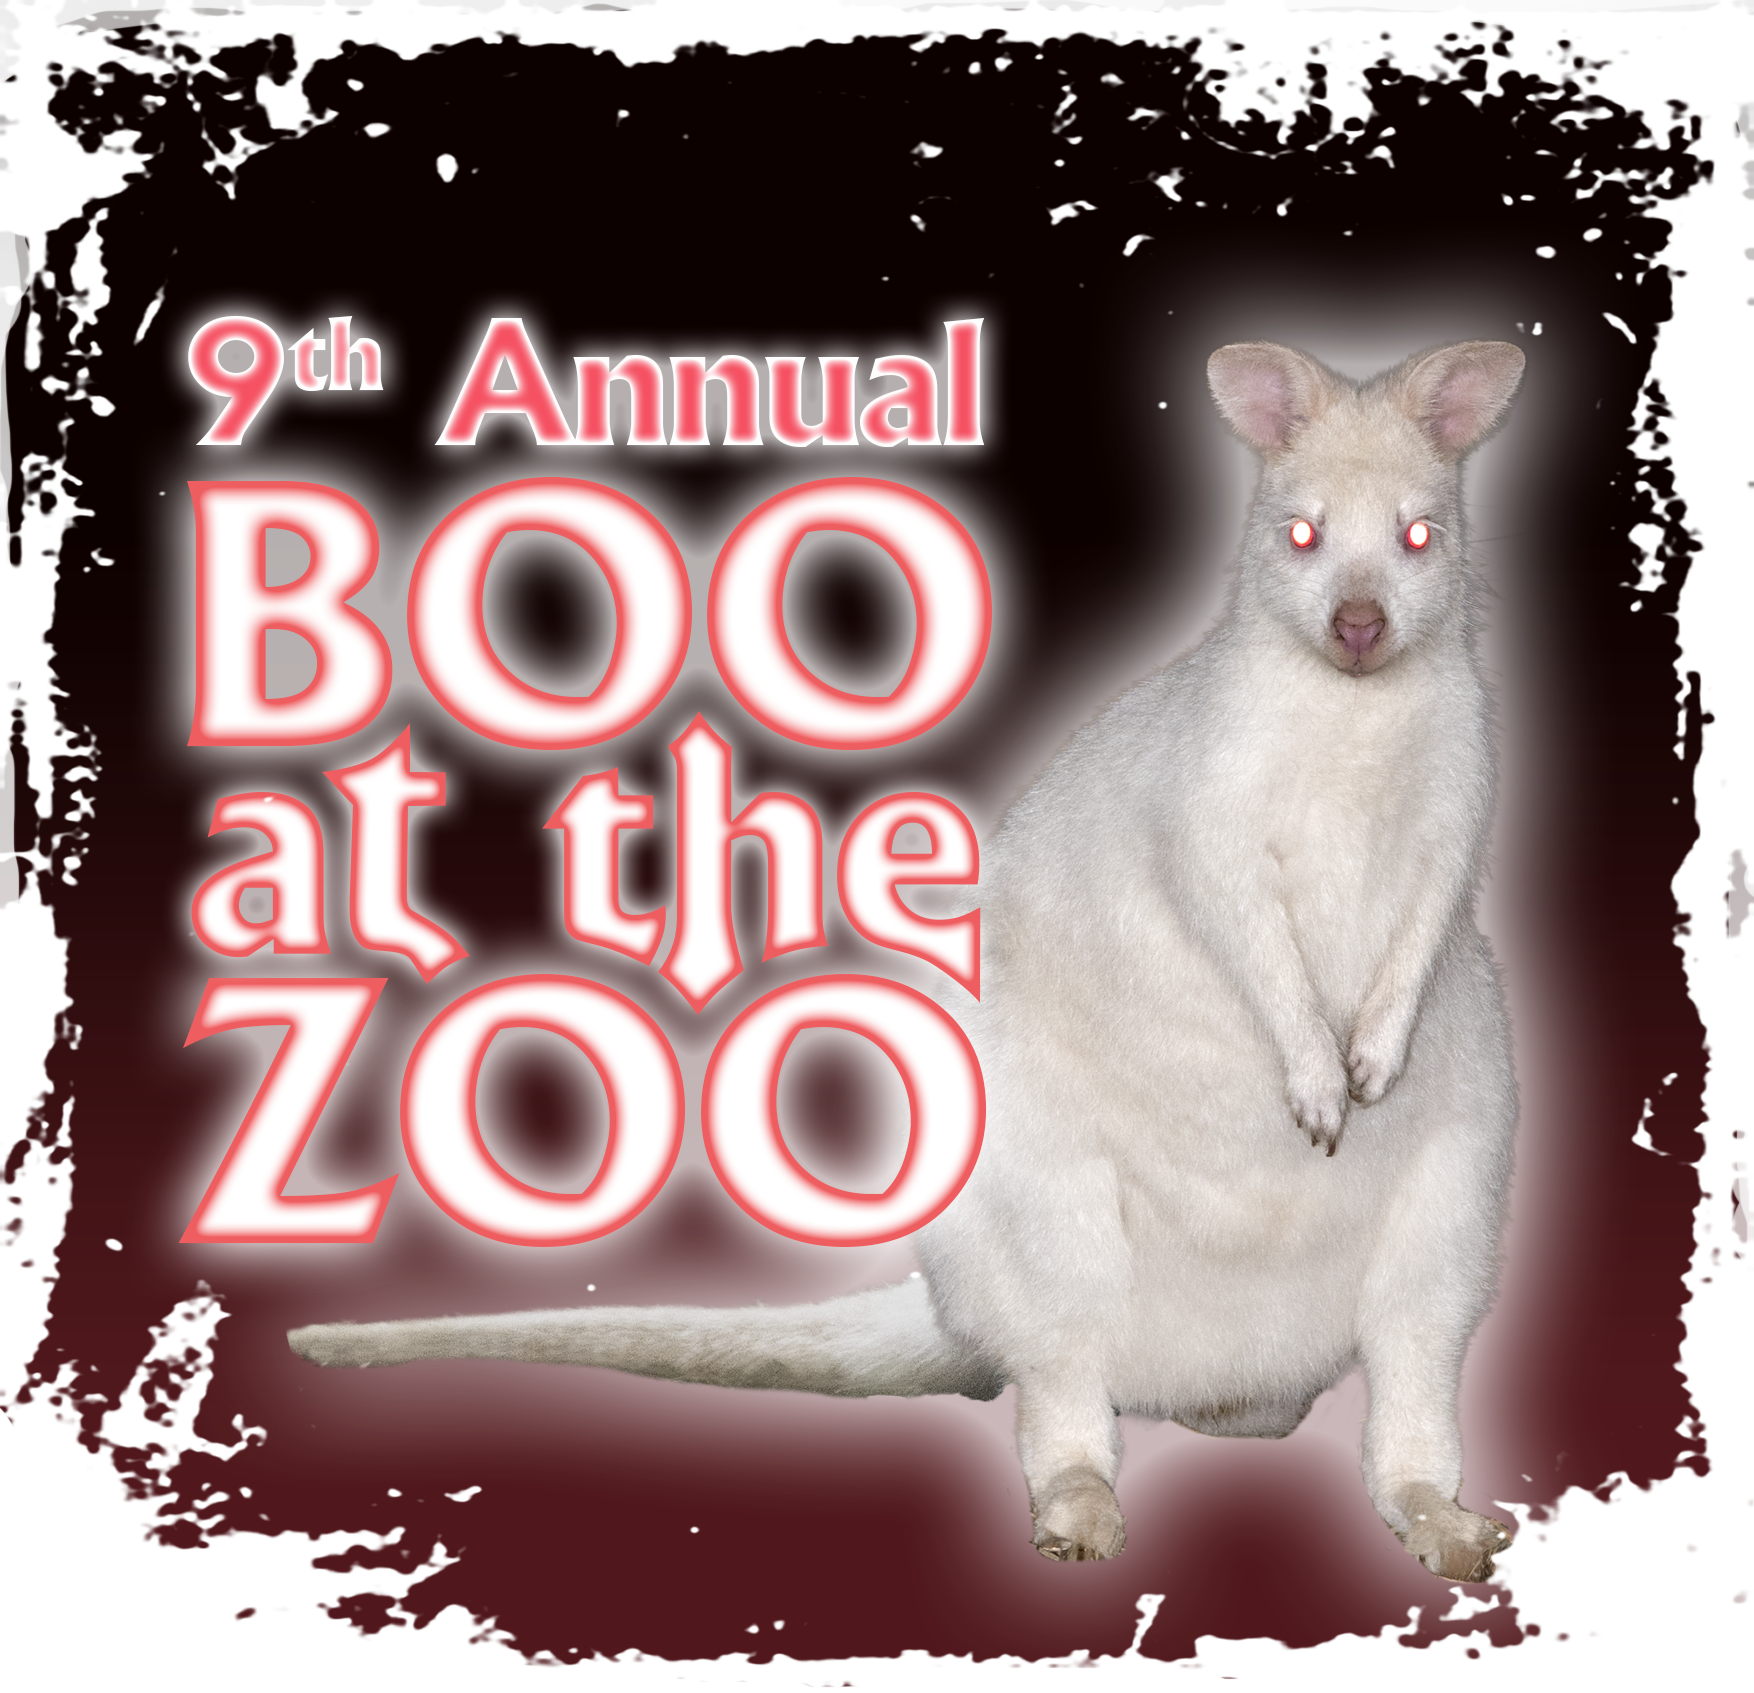 9th Annual BatZ Albino Wallaby3